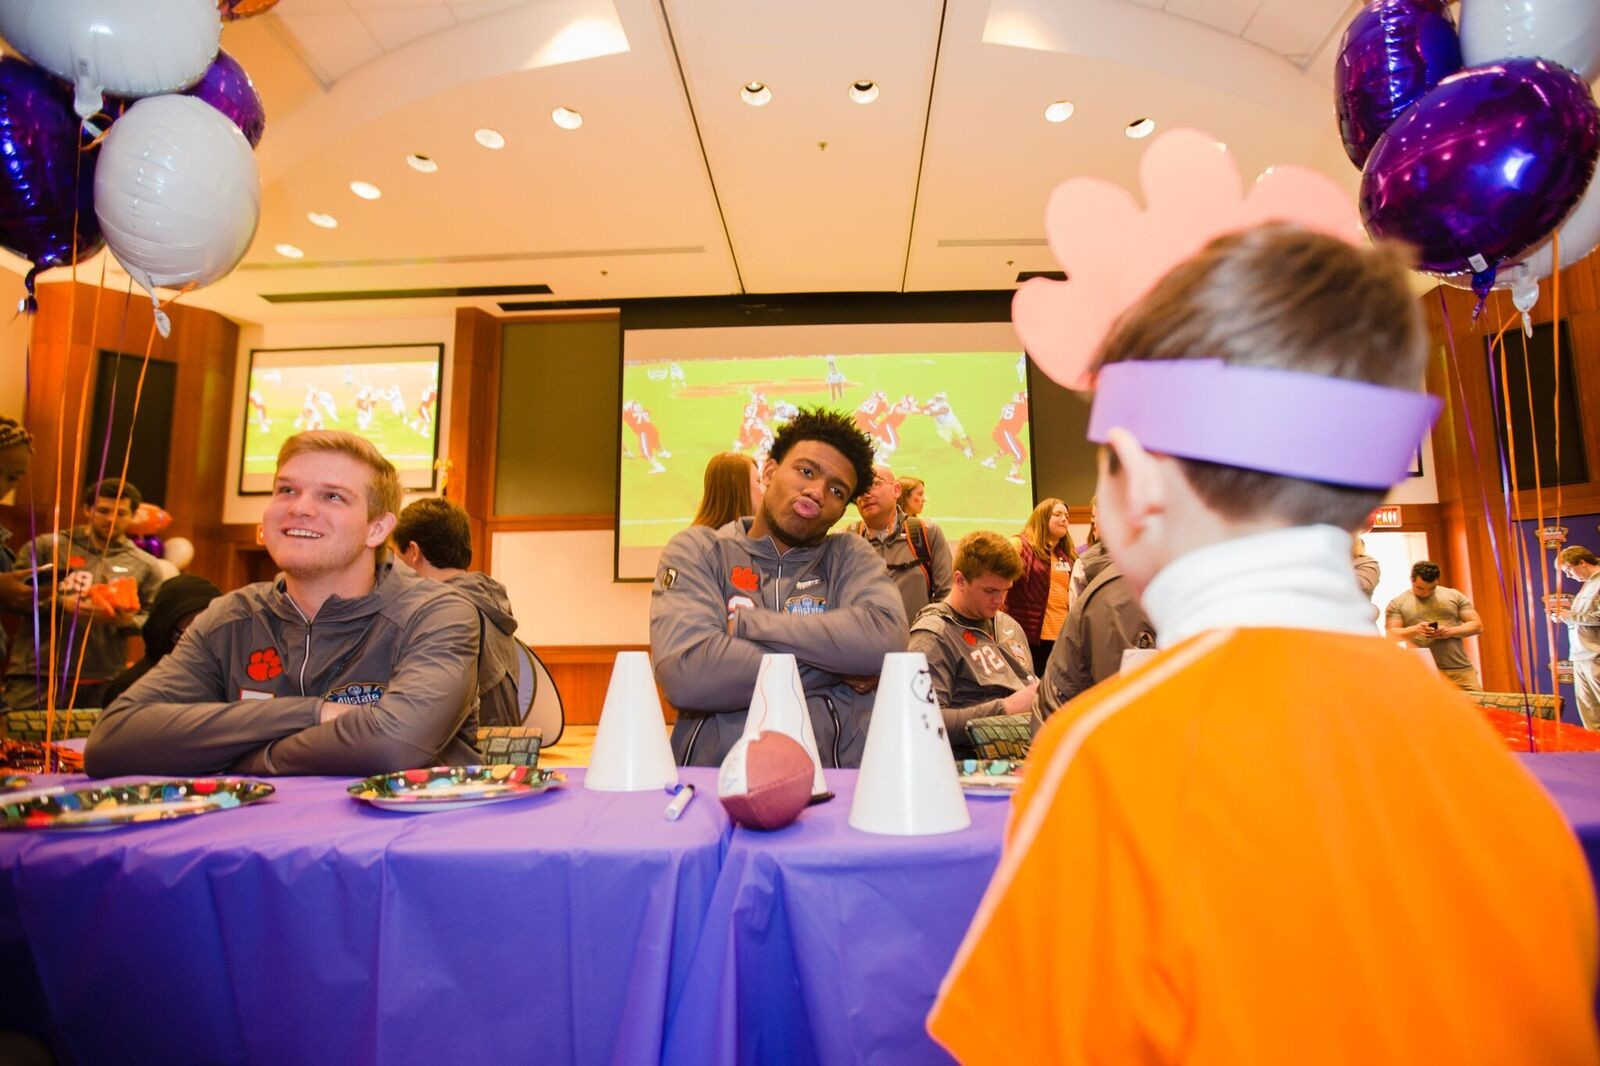 Clemson quarterback Kelly Bryant meeting patients at Ochsner Baptist Children's Hospital on Saturday in New Orleans.